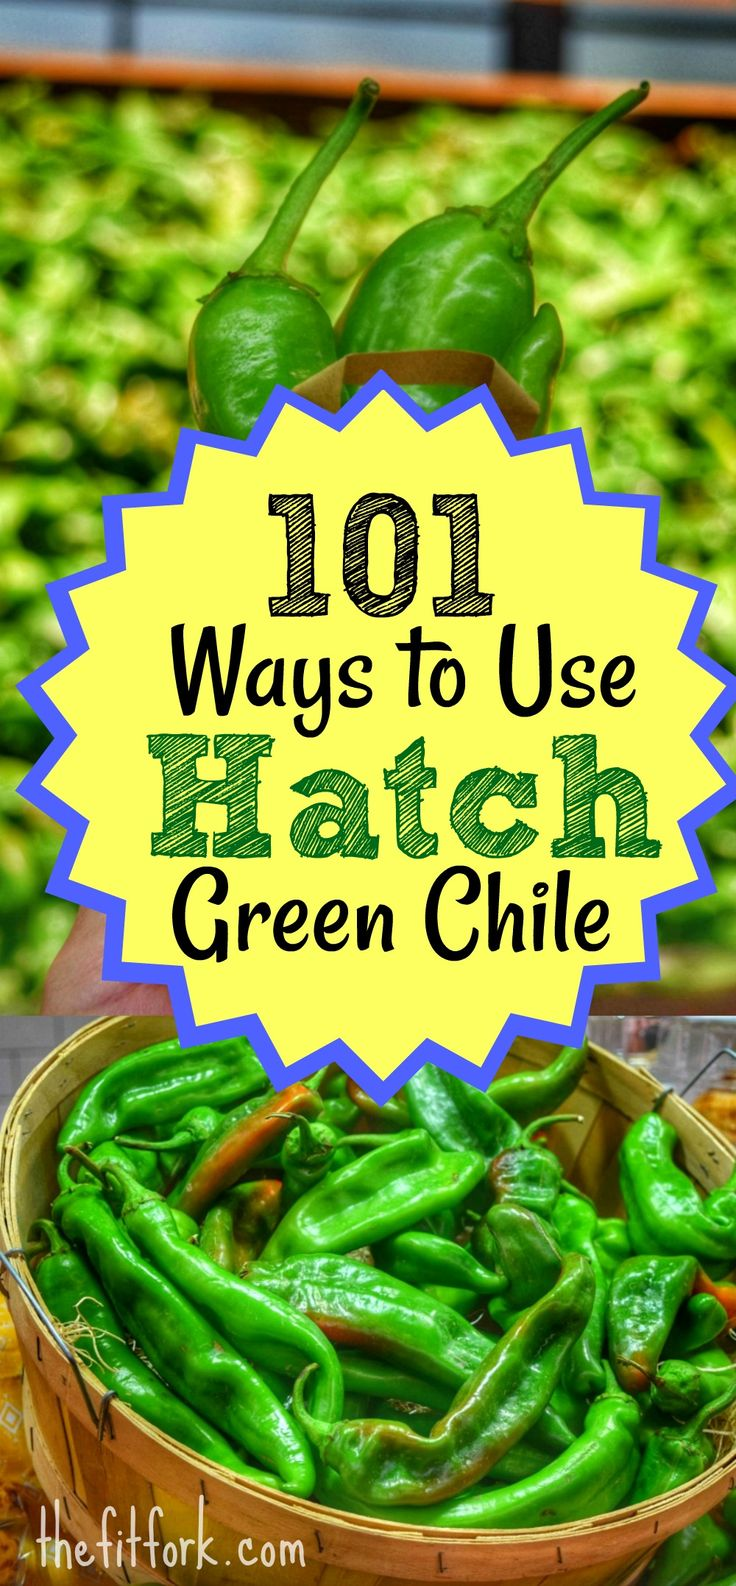 101 Ways to Use Hatch Green Chile - this versatile pepper from New Mexico has meaty flesh and mild to medium-hot heat that lends perfectly to many dishes (from salsas and stews to meats and dessert treats) Learn how to roast them in the oven and grill and get creative ideas on how to enjoy them now and all year long. And don't miss the Hatch Chile Festival at Central Market #LandofEnchantment #Ad